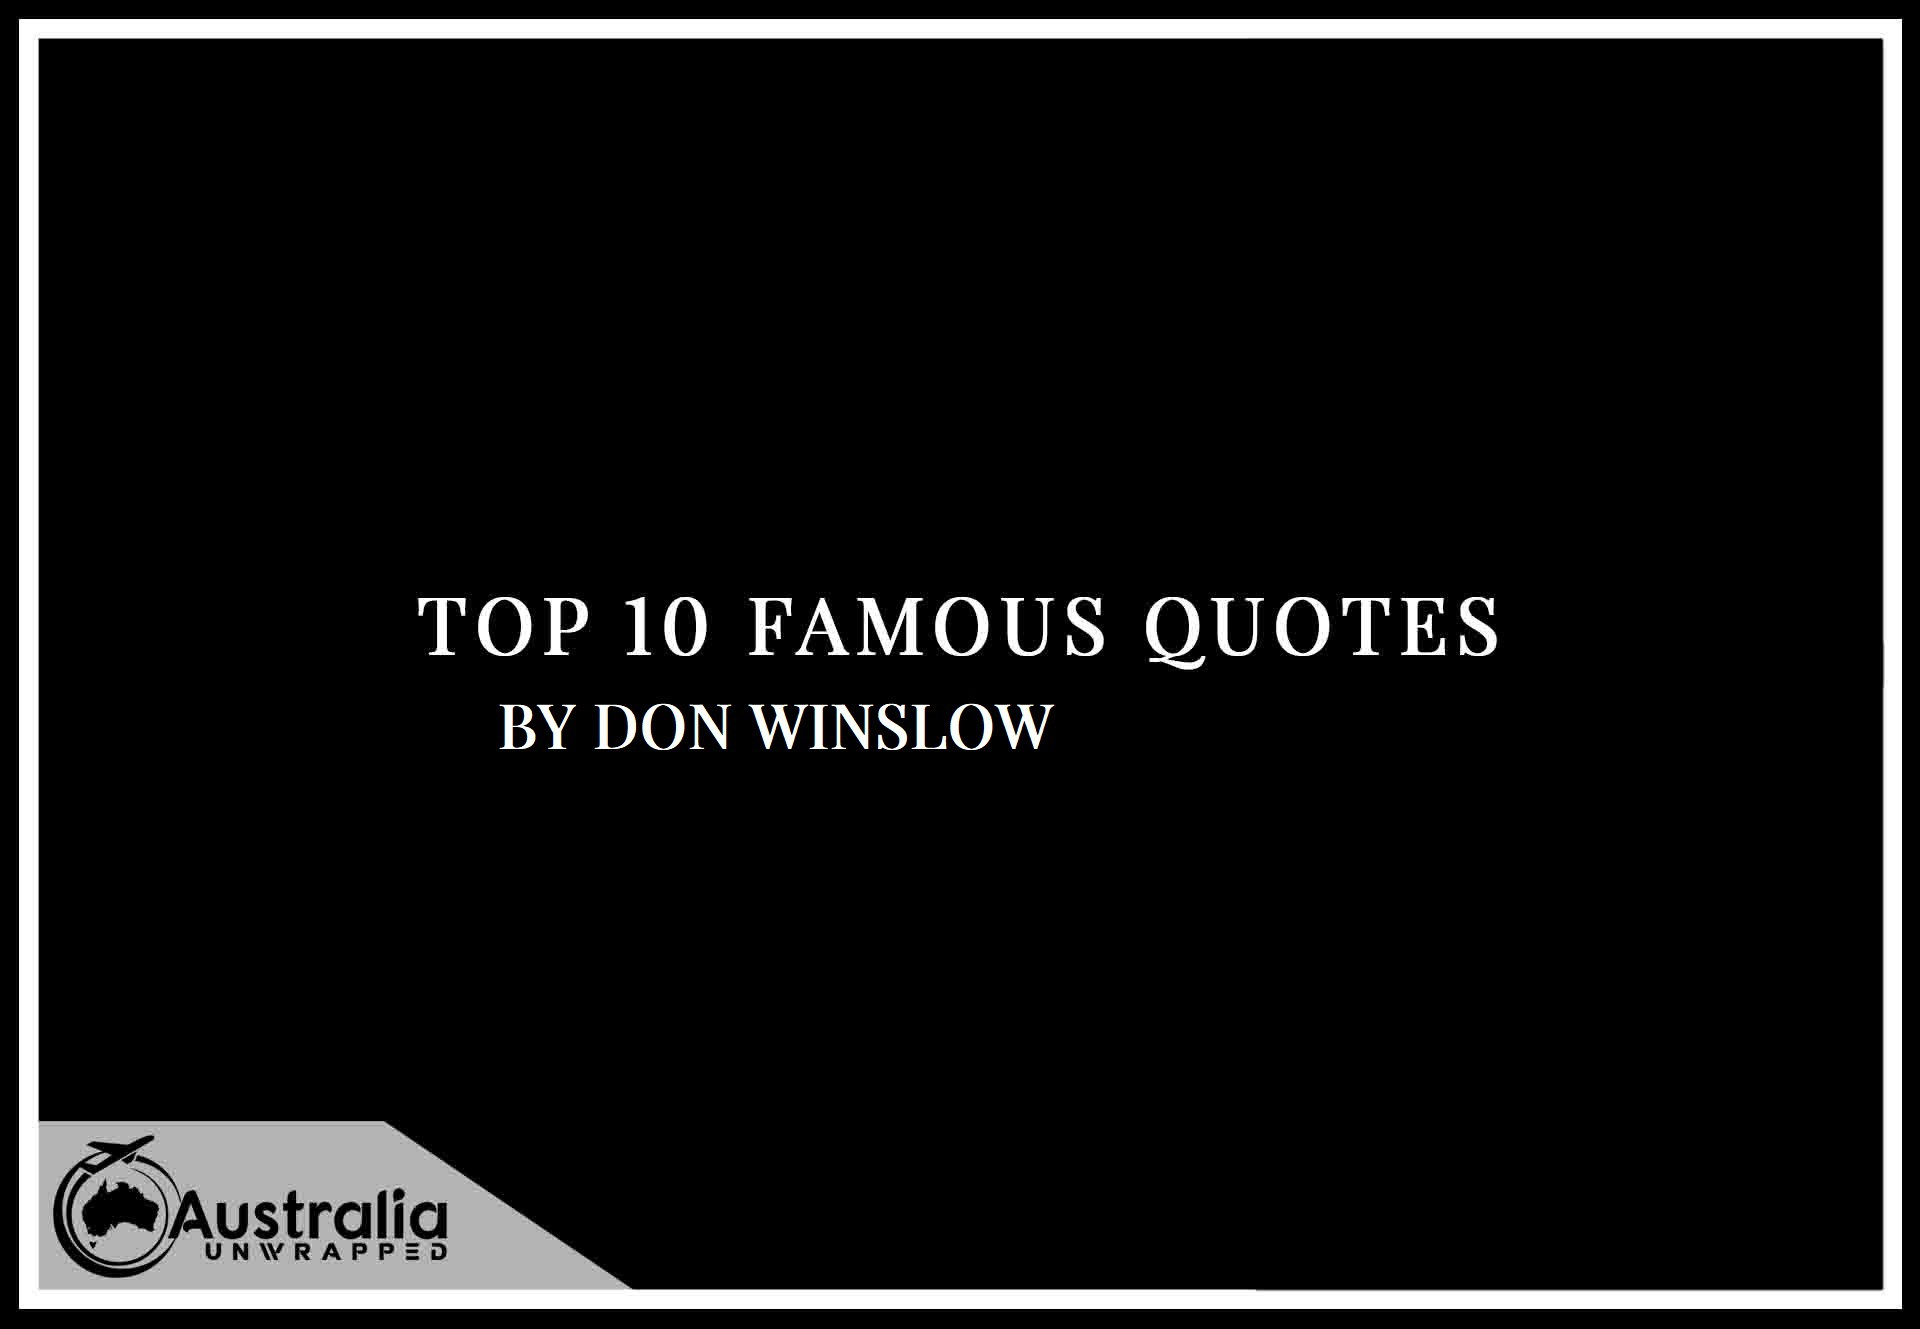 Top 10 Famous Quotes by Author Don Winslow